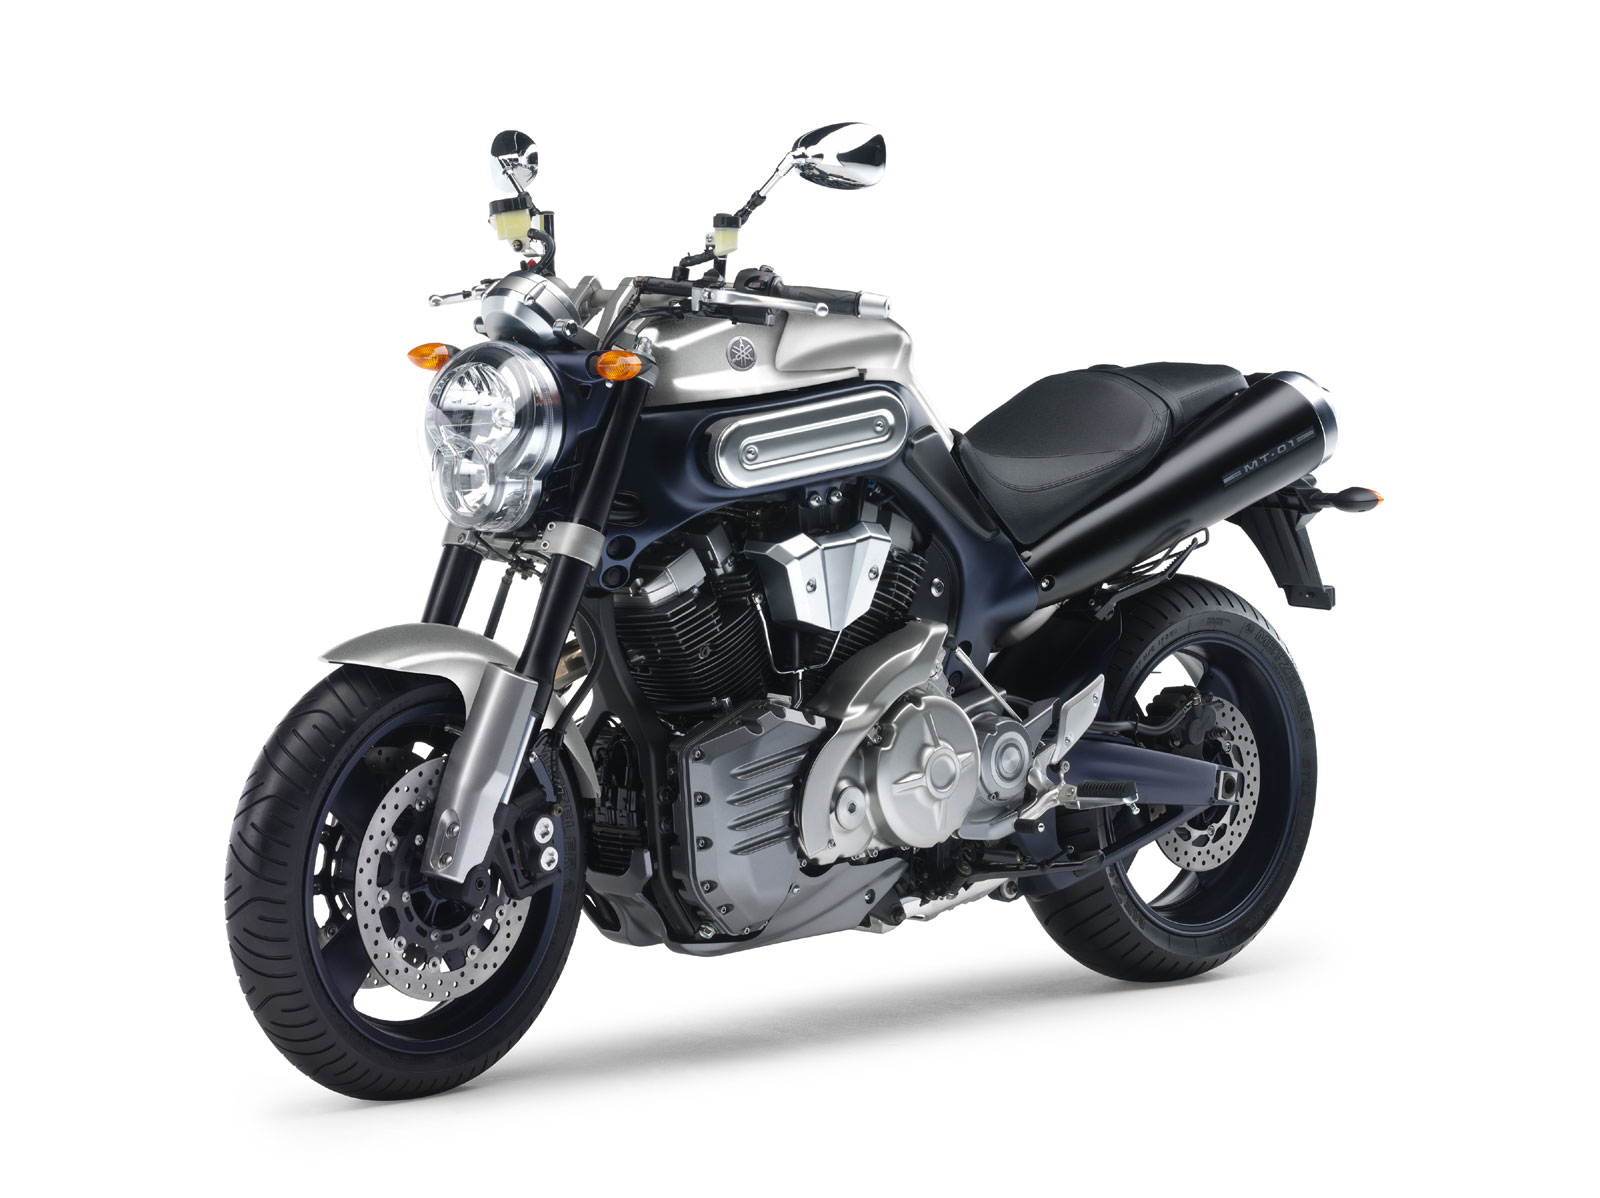 yamaha mt 01 specs 2004 2005 autoevolution. Black Bedroom Furniture Sets. Home Design Ideas